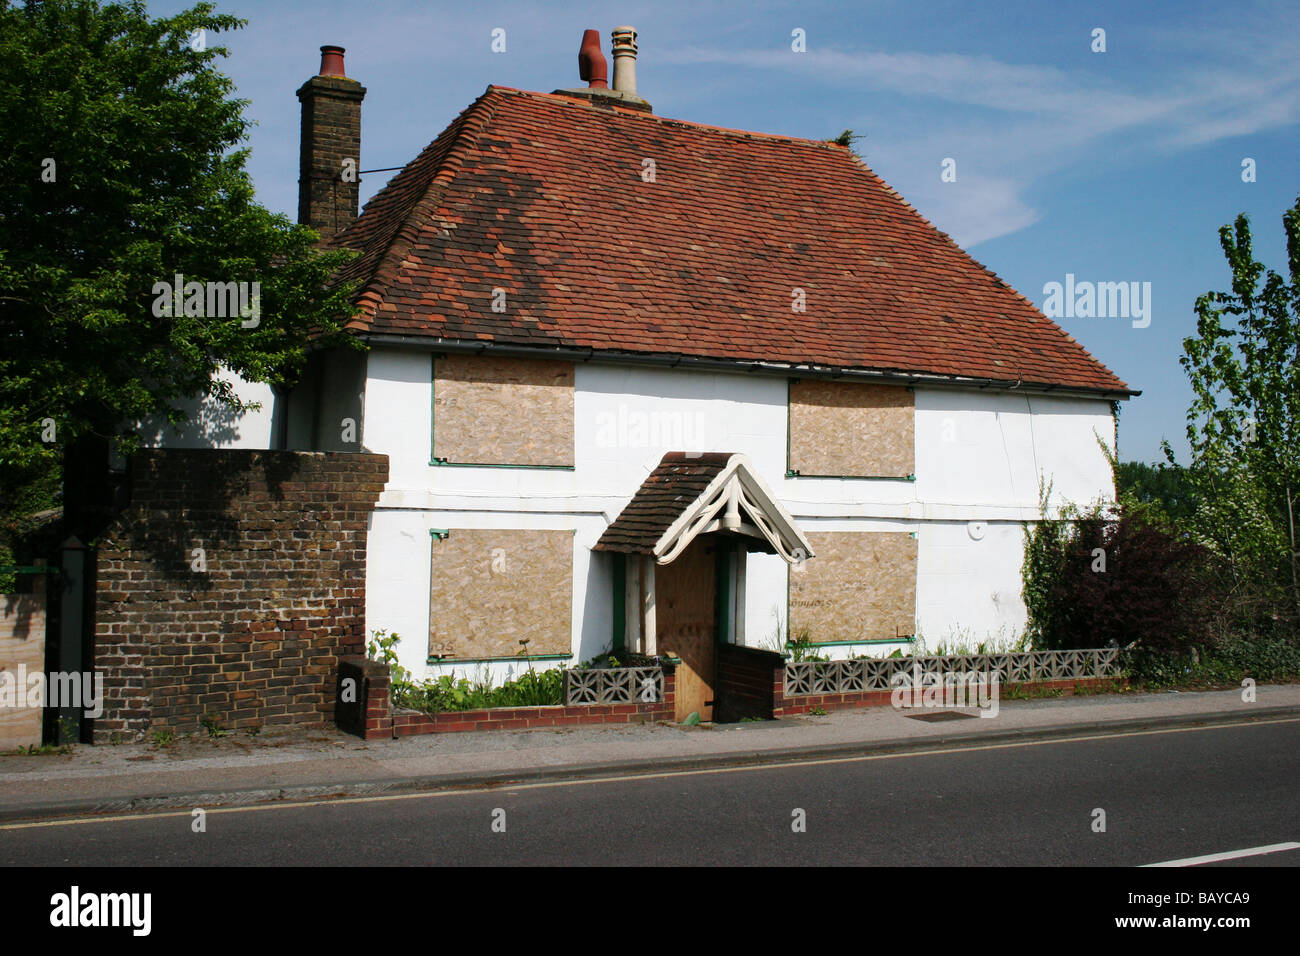 Boarded up and unoccupied house Rainham Kent UK - Stock Image